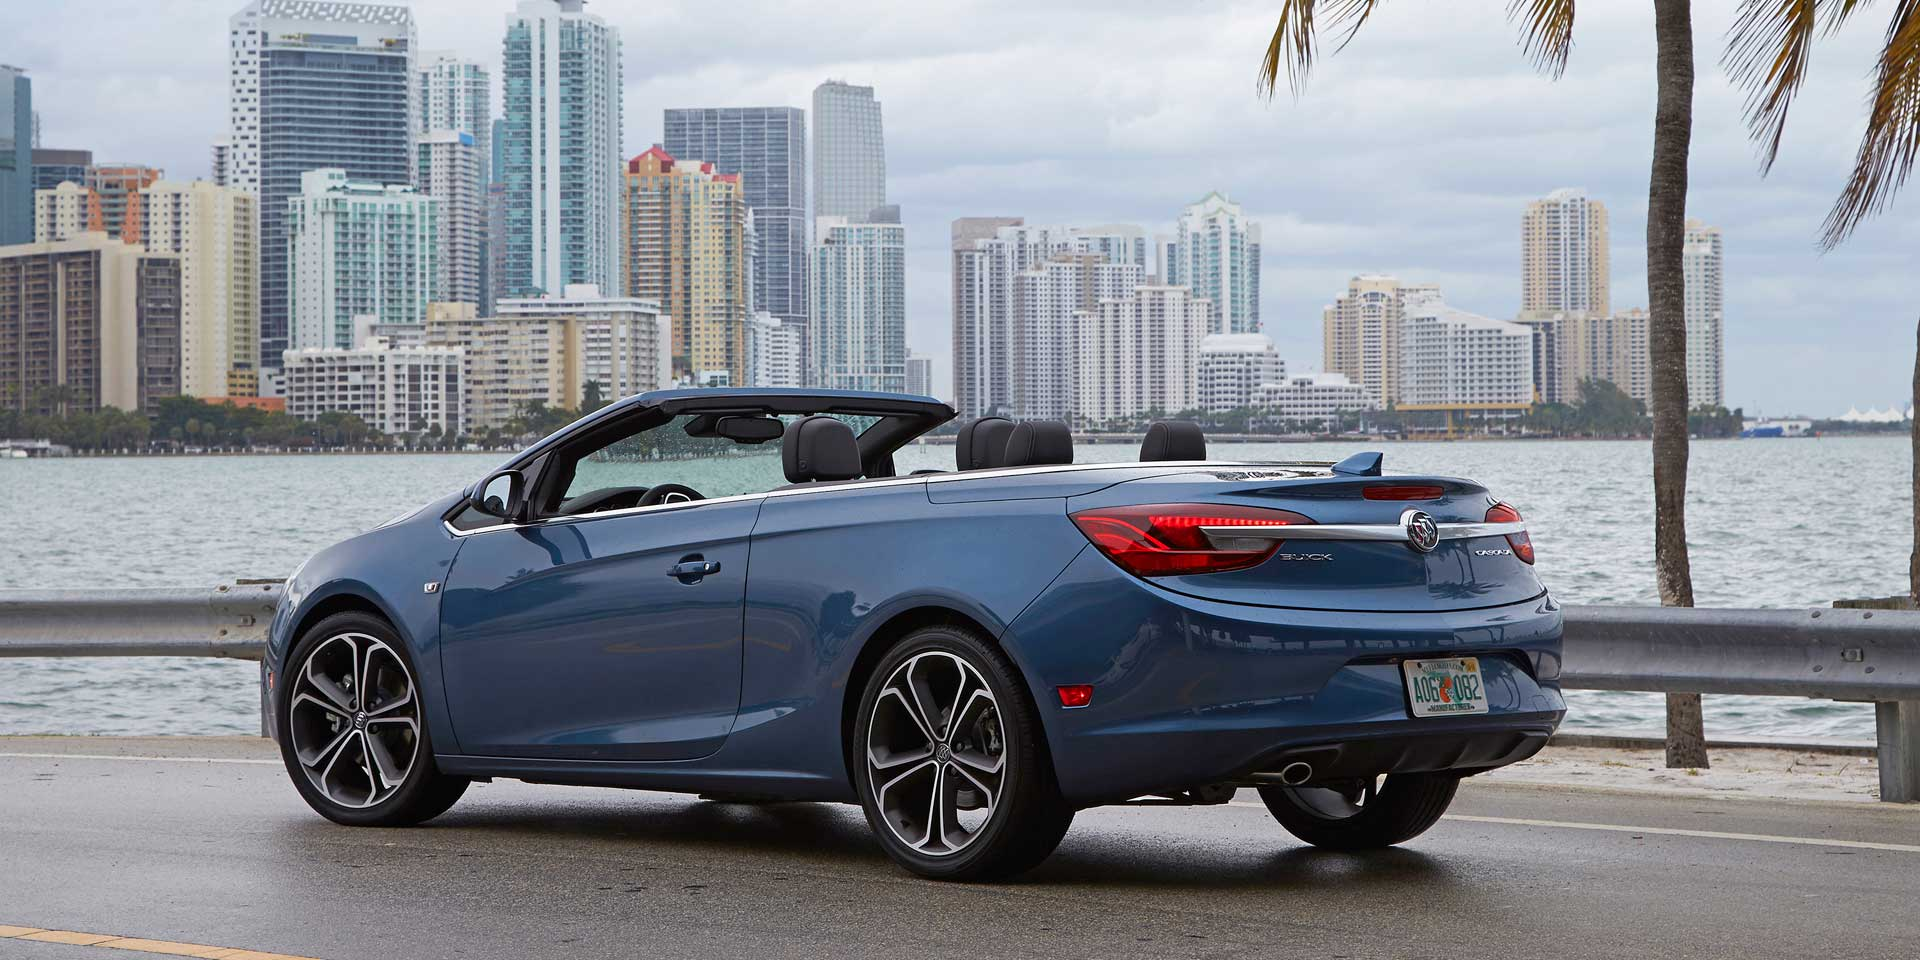 2019  buick  cascada  vehicles on display  chicago